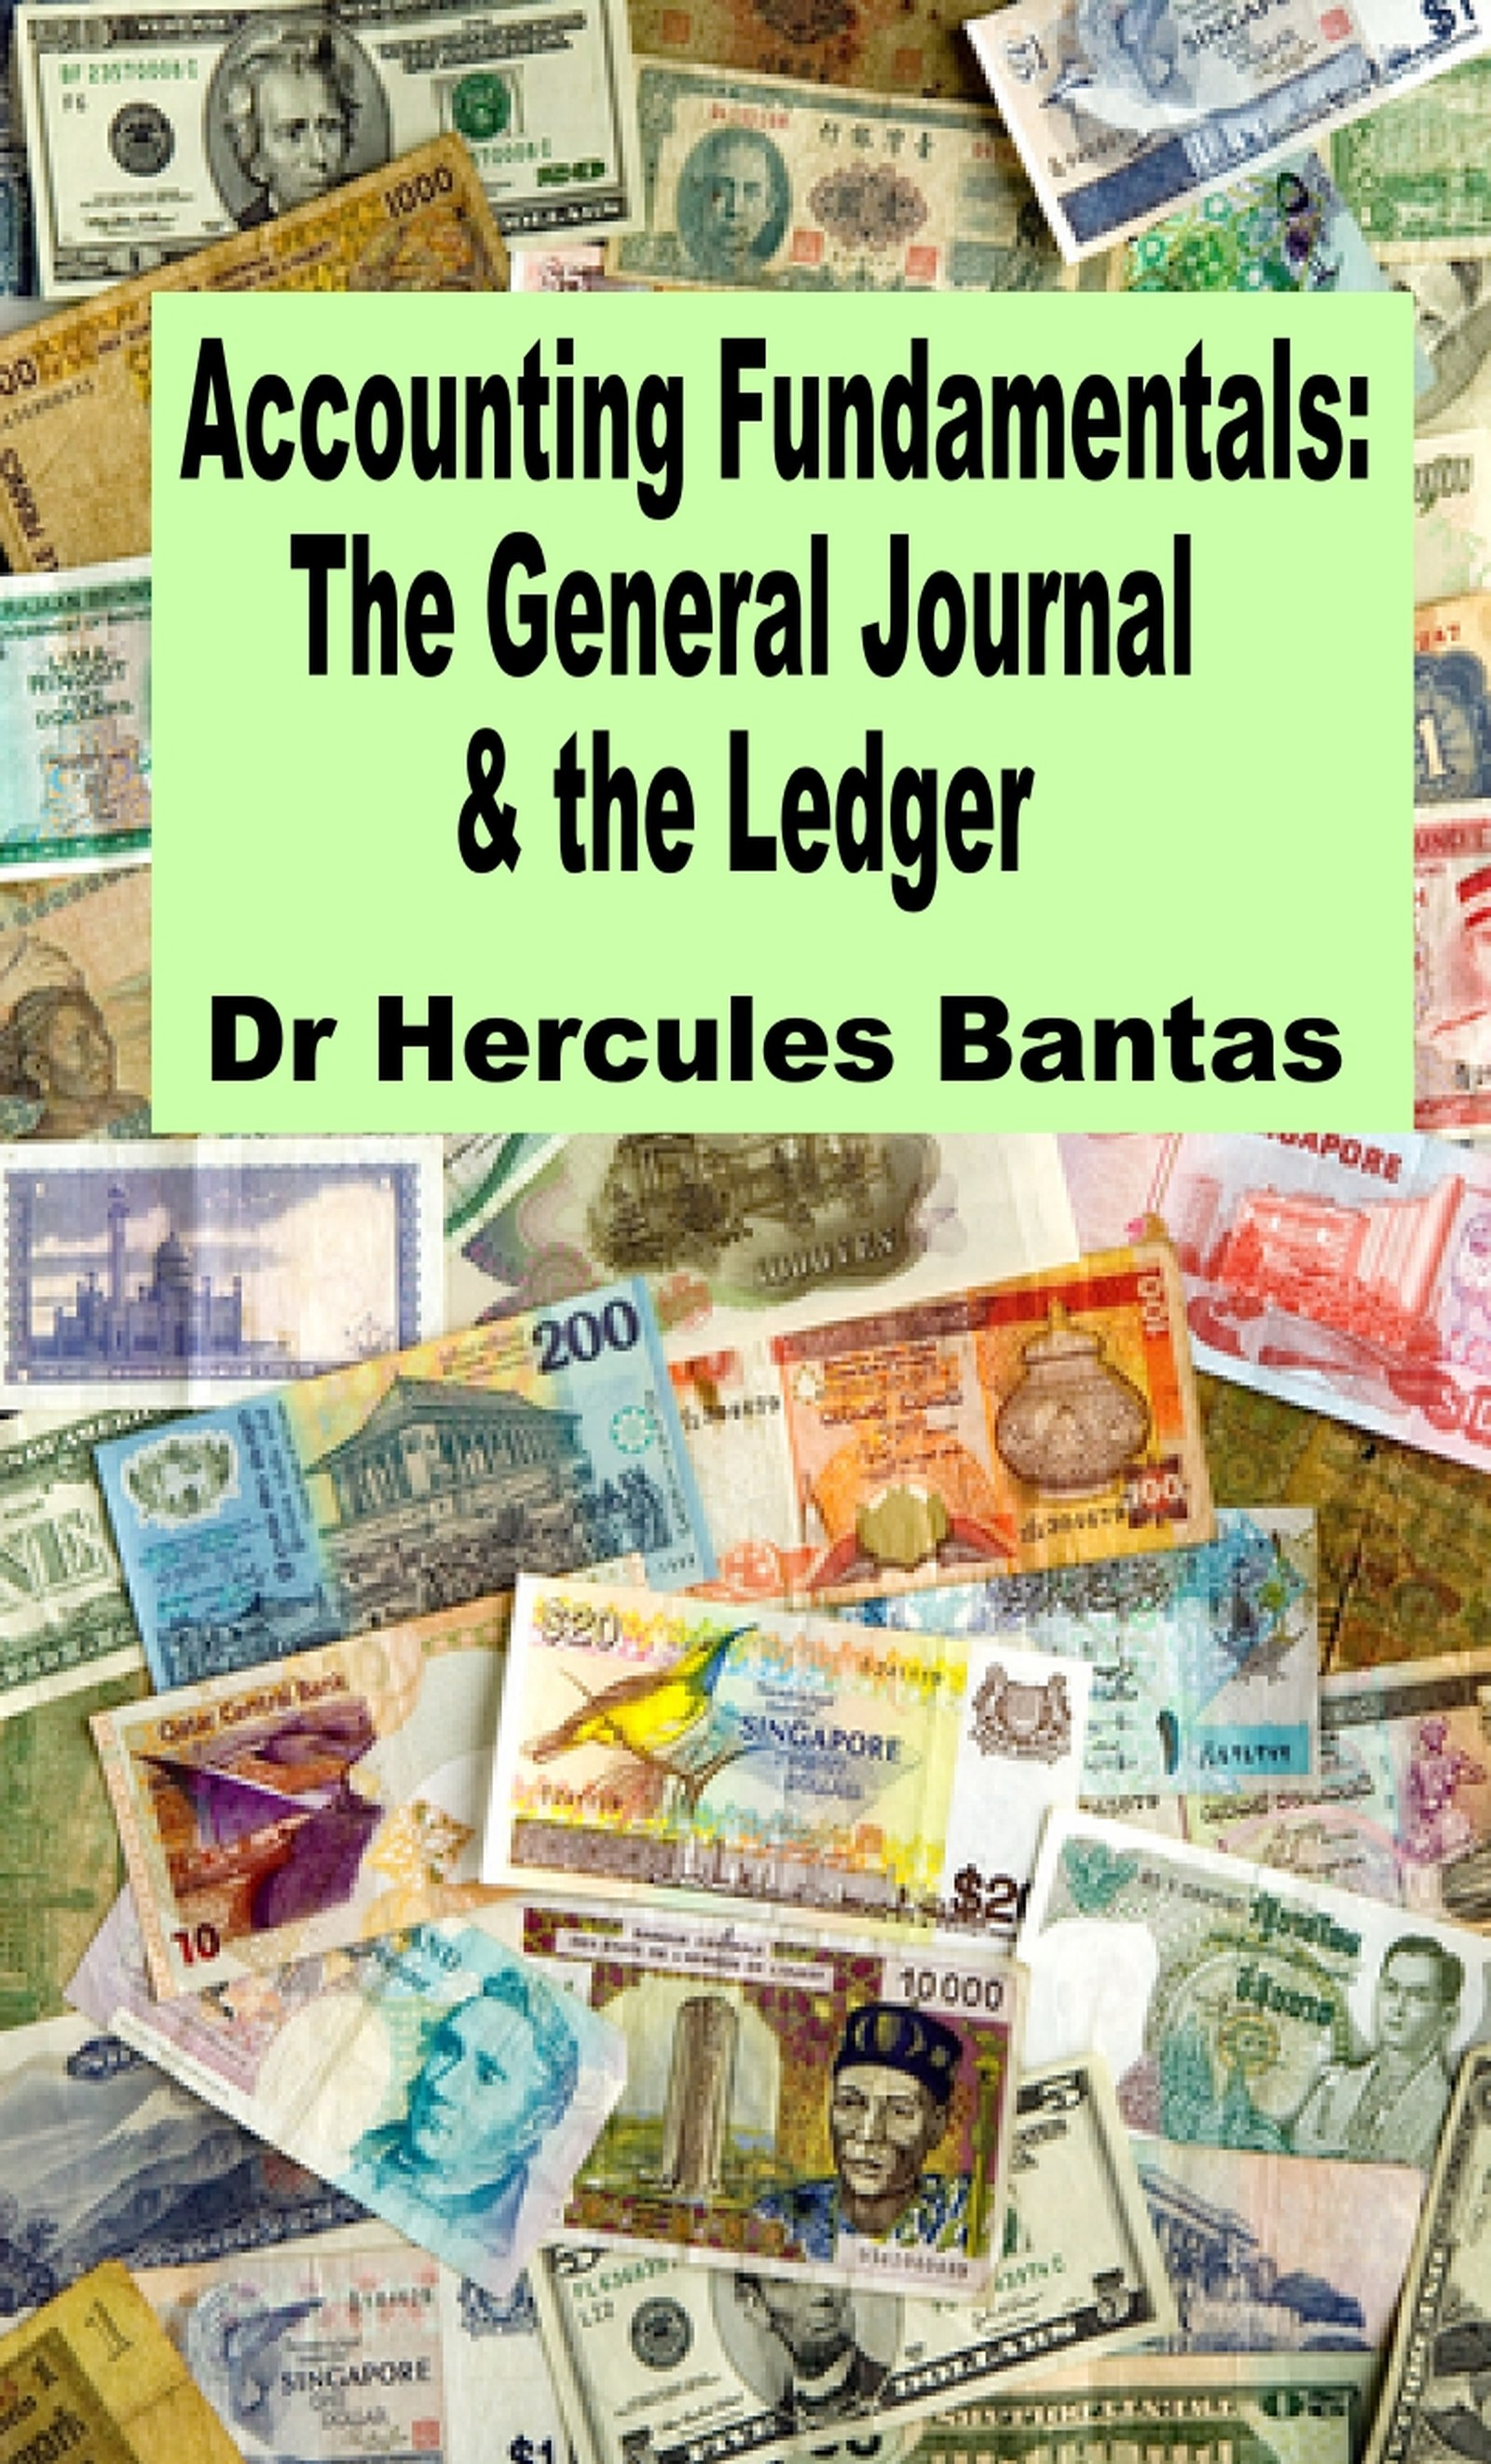 The General Journal and the Ledger (Accounting Fundamentals)